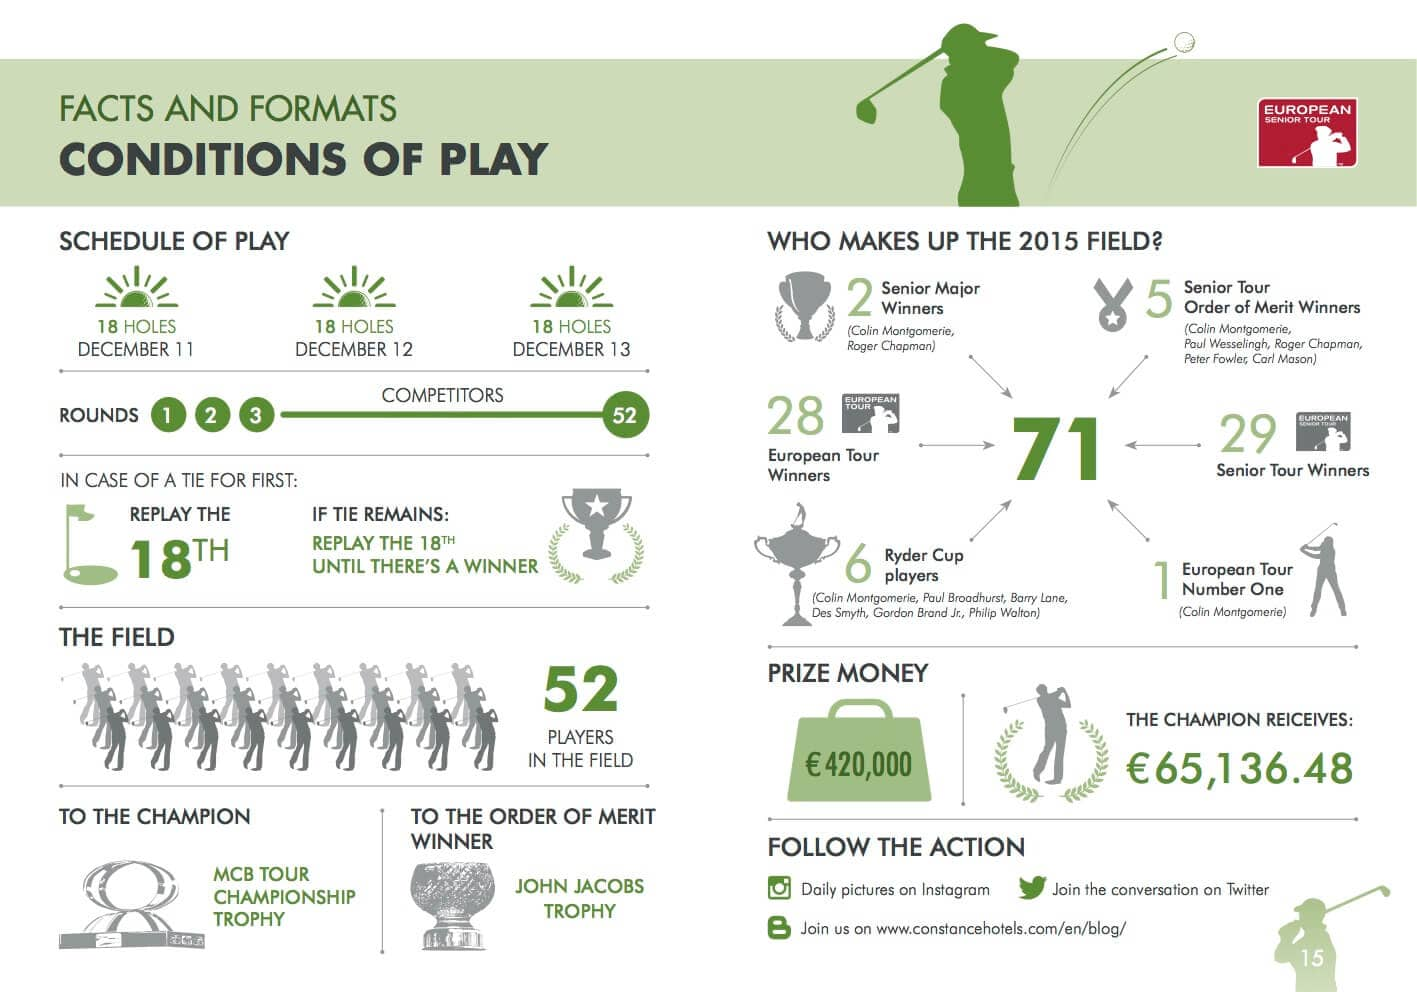 European Senior Tour Championship - The facts and Figures